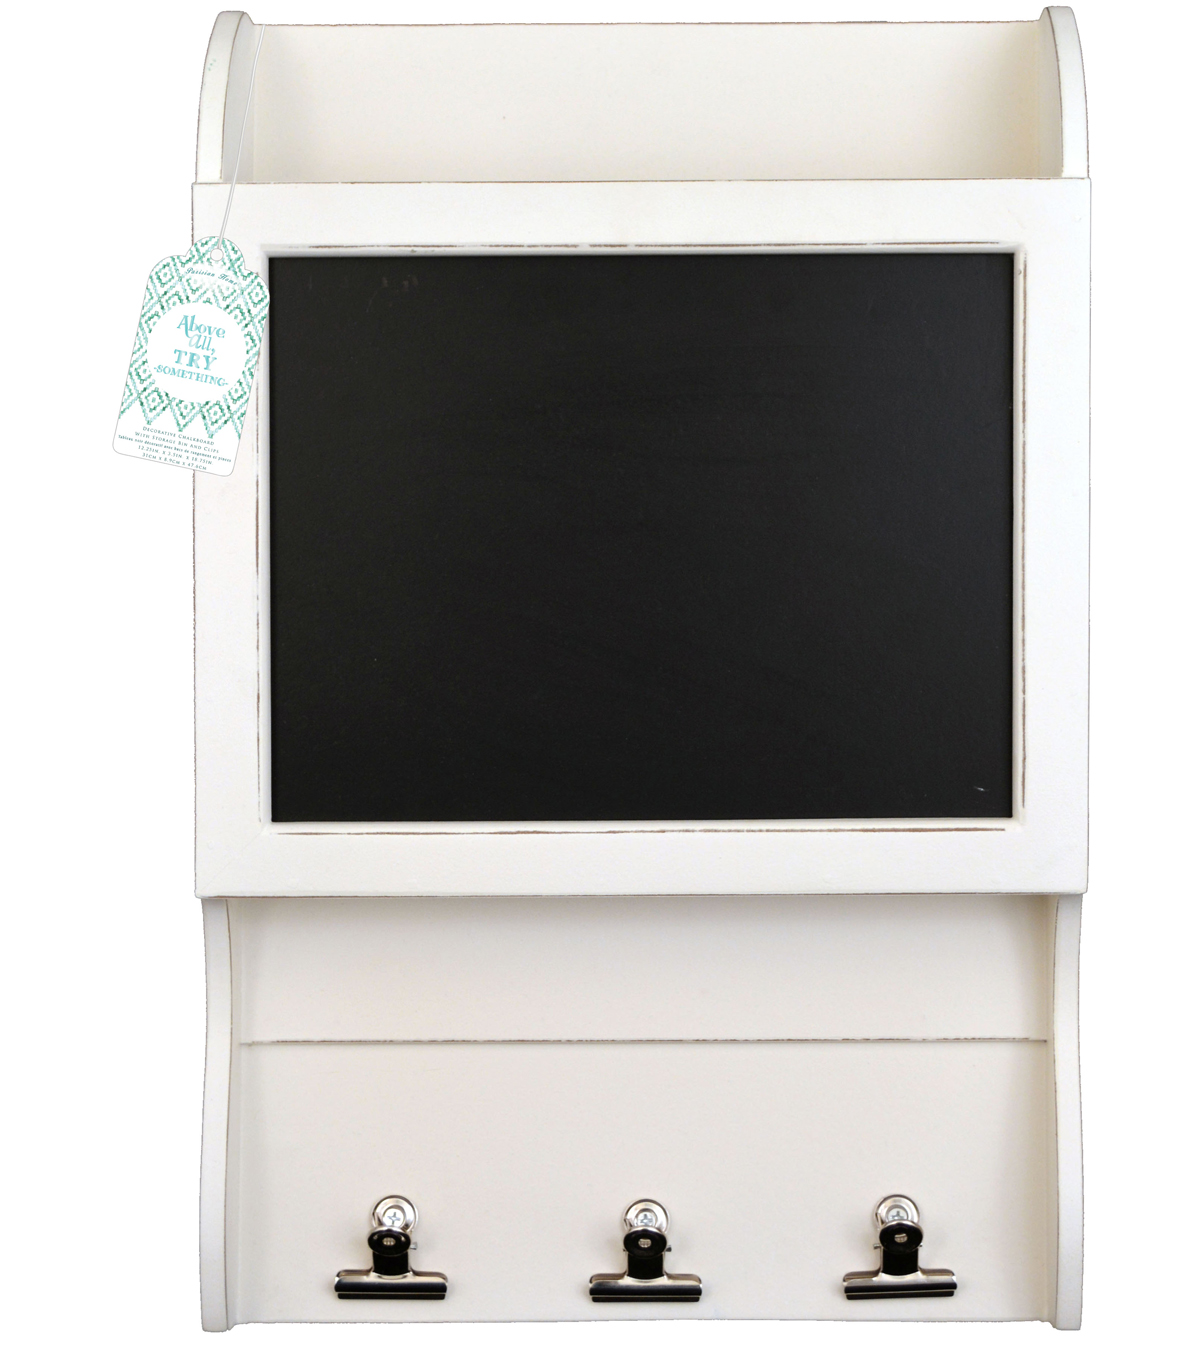 12.2\u0022 x 18.7\u0022 Distressed Chalkboard Wall Cabinet with Clips-White